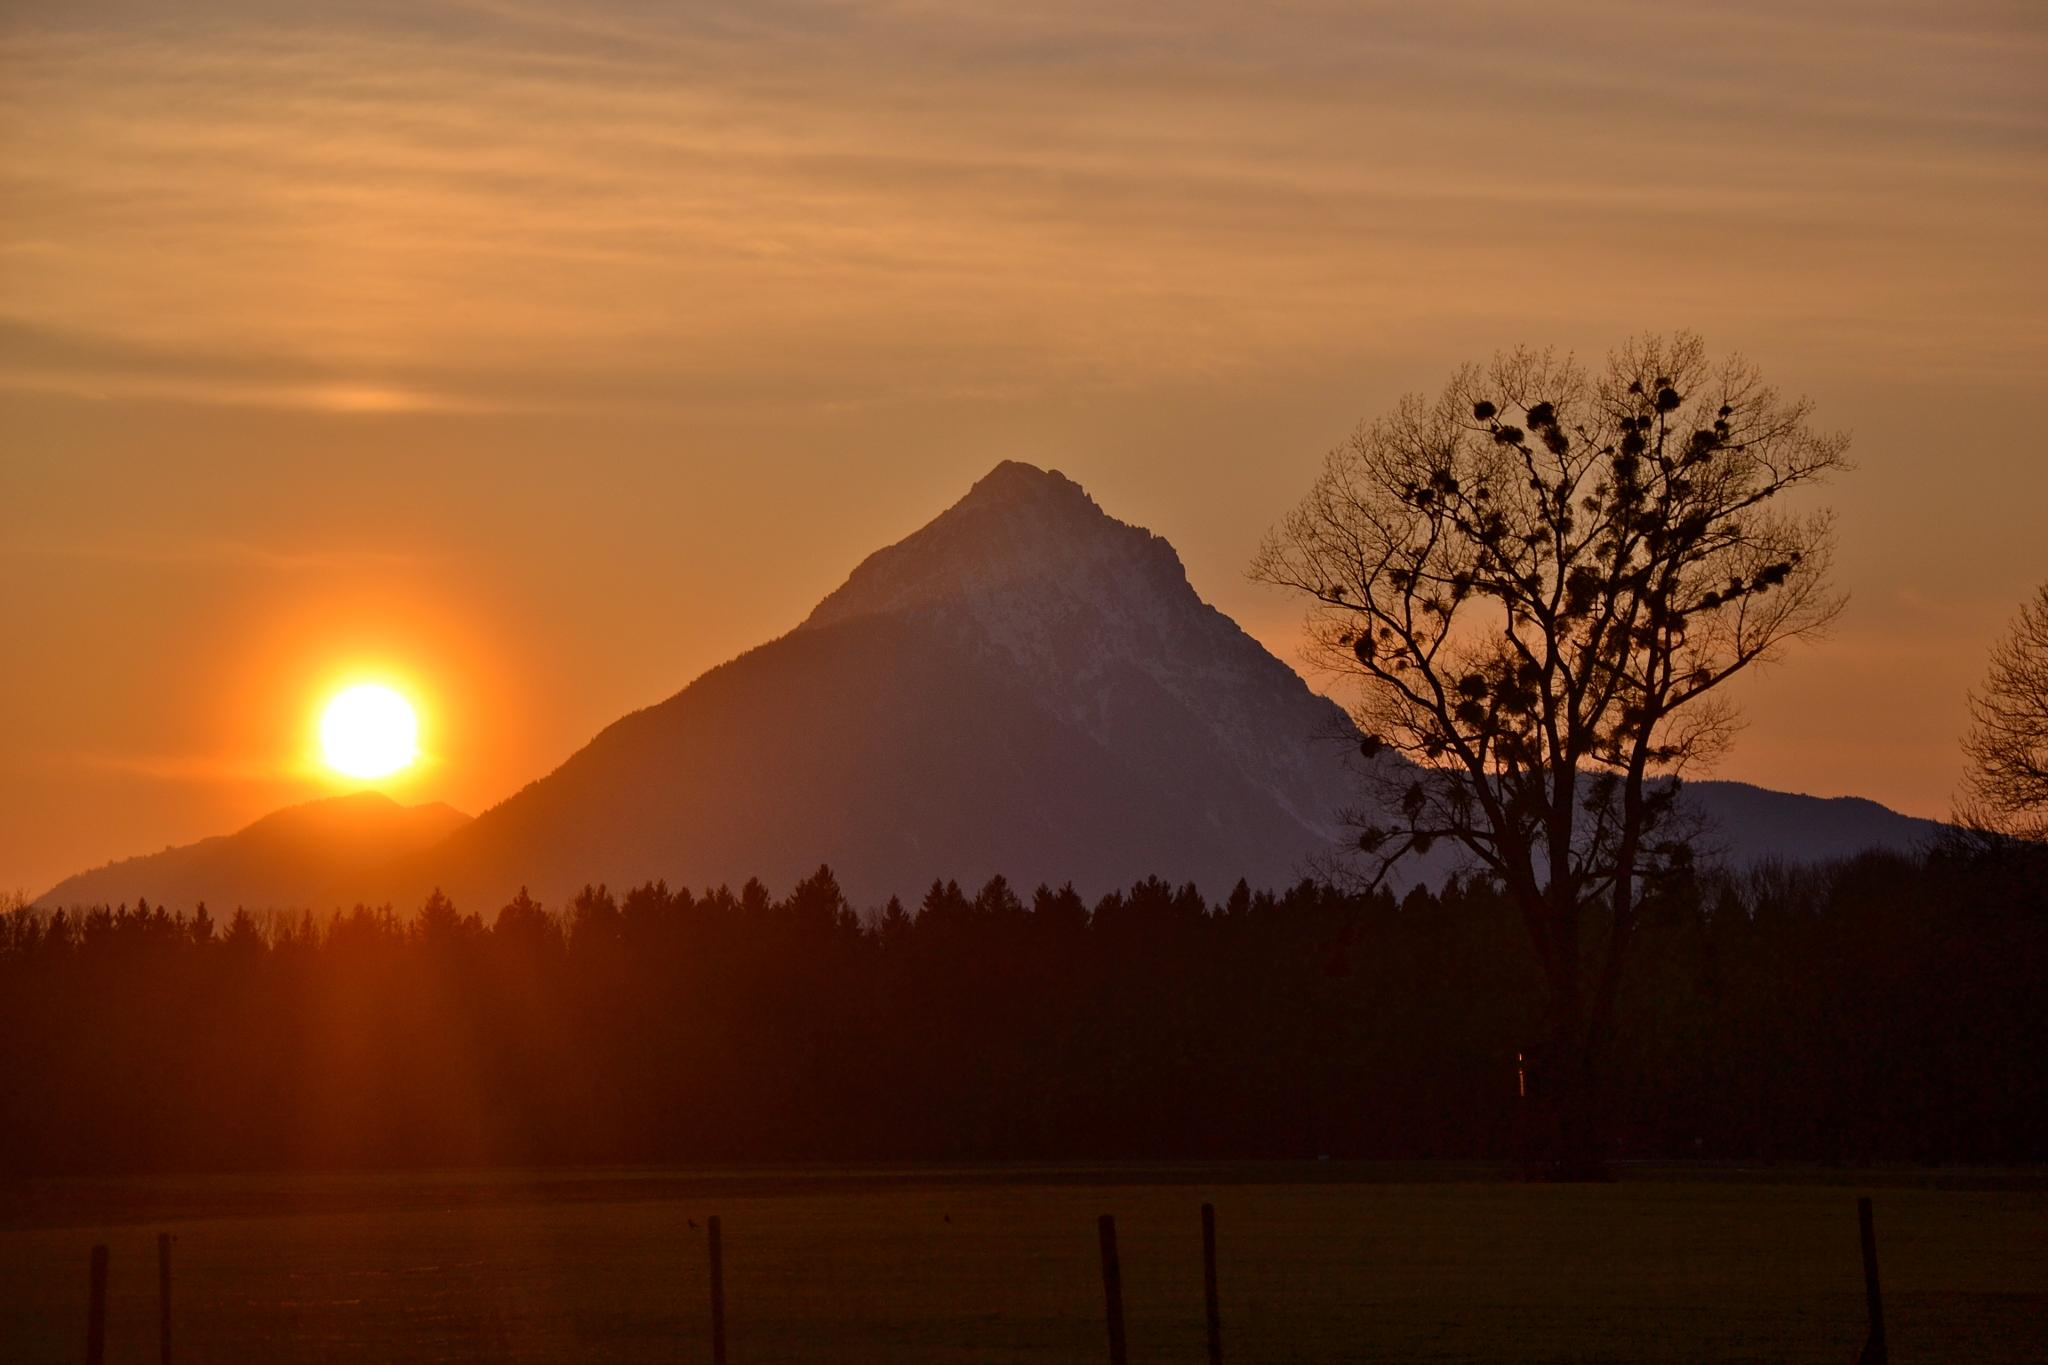 The sun, the pyramid and the tree by echumachenco